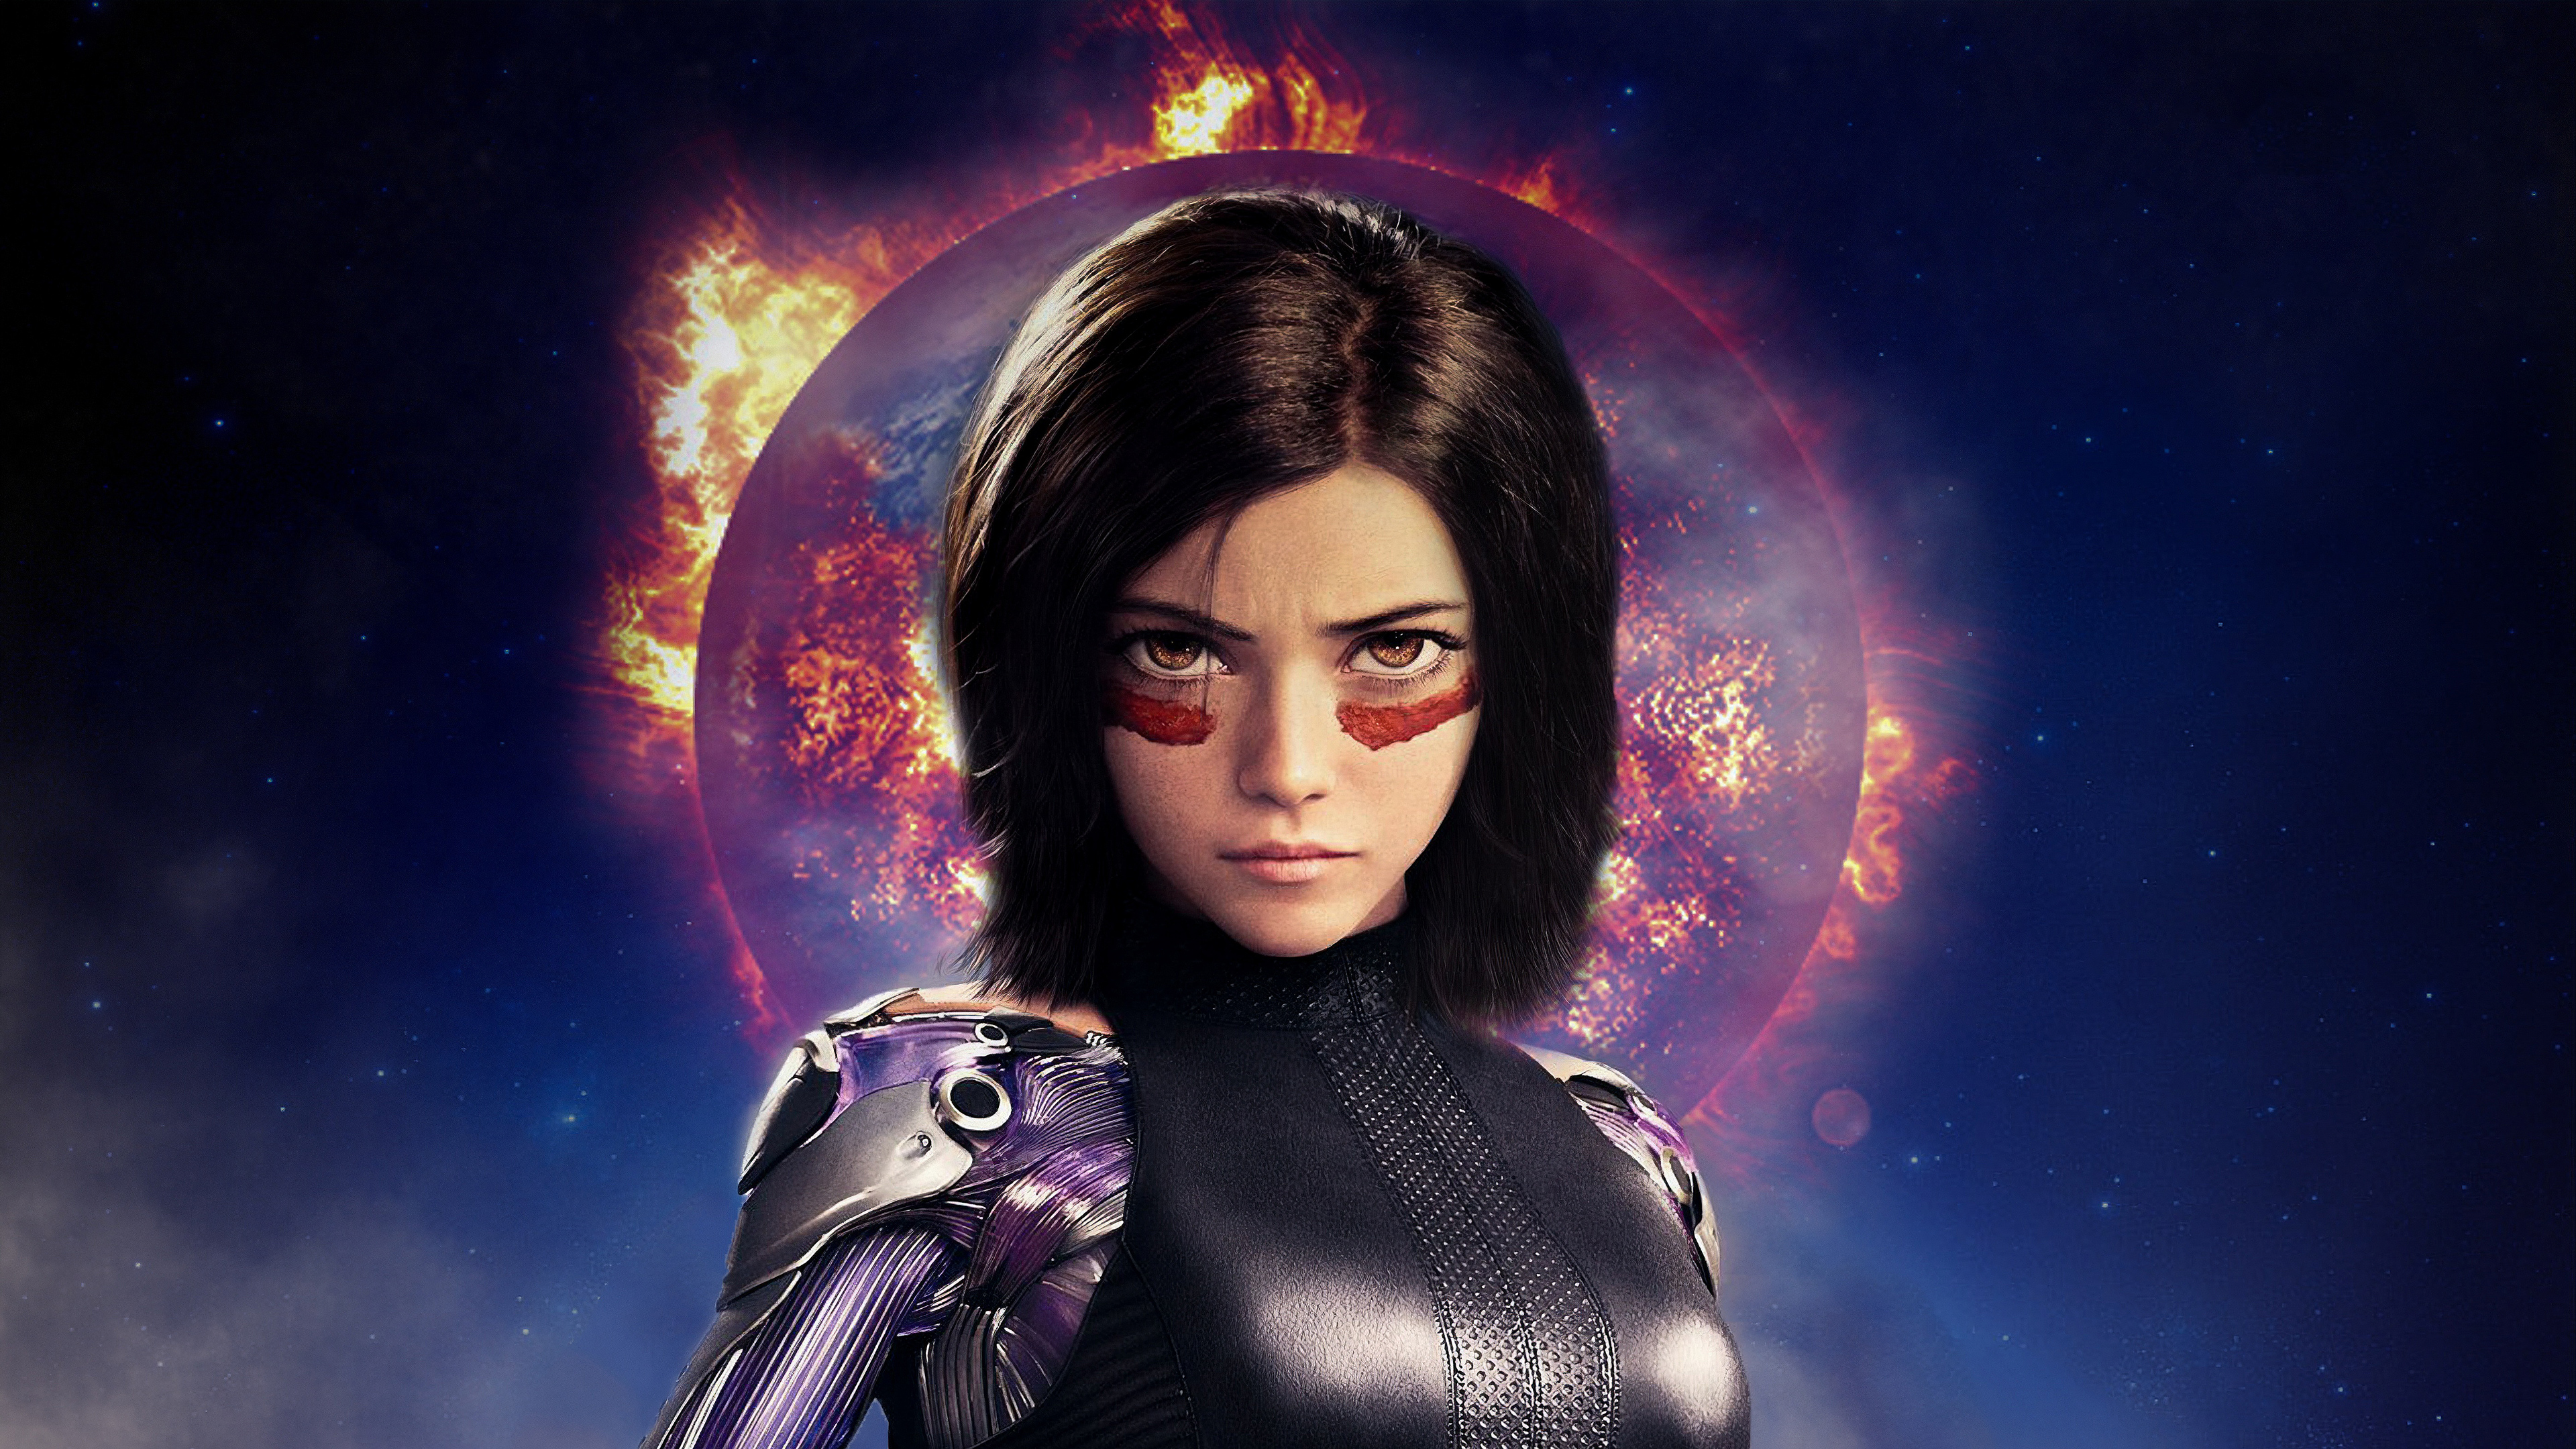 4k alita battle angel 1562107019 - 4k Alita Battle Angel - hd-wallpapers, behance wallpapers, artwork wallpapers, artist wallpapers, alita battle angel wallpapers, 4k-wallpapers